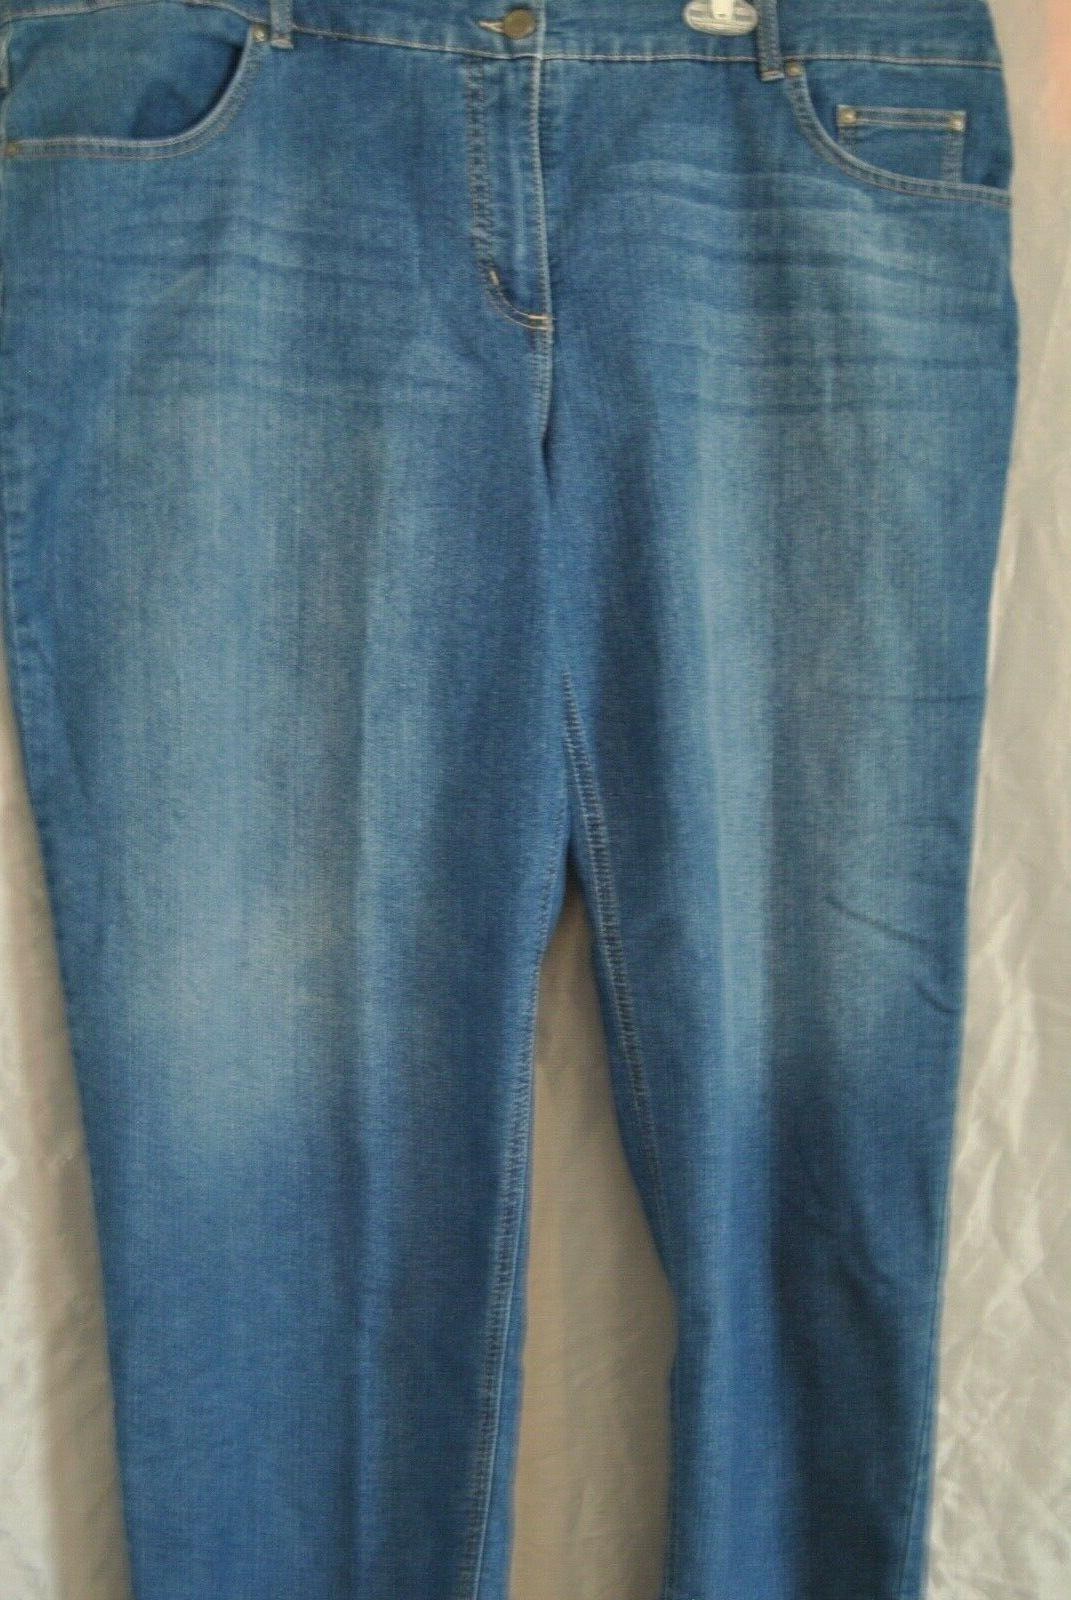 Women's Blue Jeans by Hanes Size 26WS Classic Fit Denim Stra